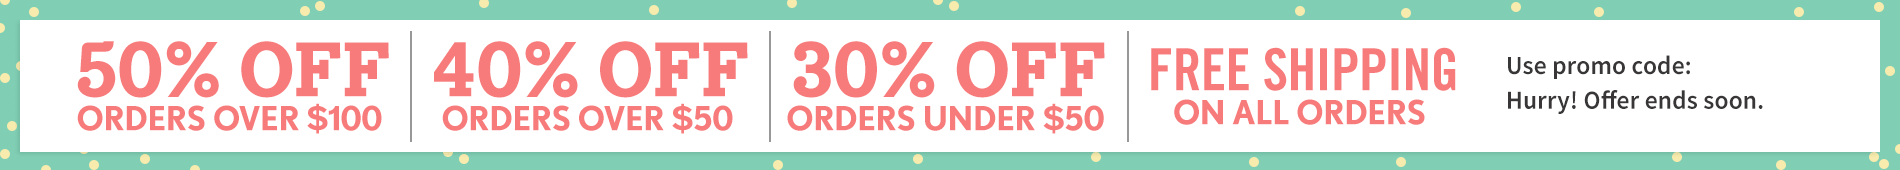 Current Promo: Sitewide Sale LIMITED-TIME SALETAKE 50% OFFORDERS OF $100+SAVE 40% ON ORDERS $50 - $100 SAVE 30% ON ORDERS UNDER $50+FREE SHIPPING ON ALL ORDERS